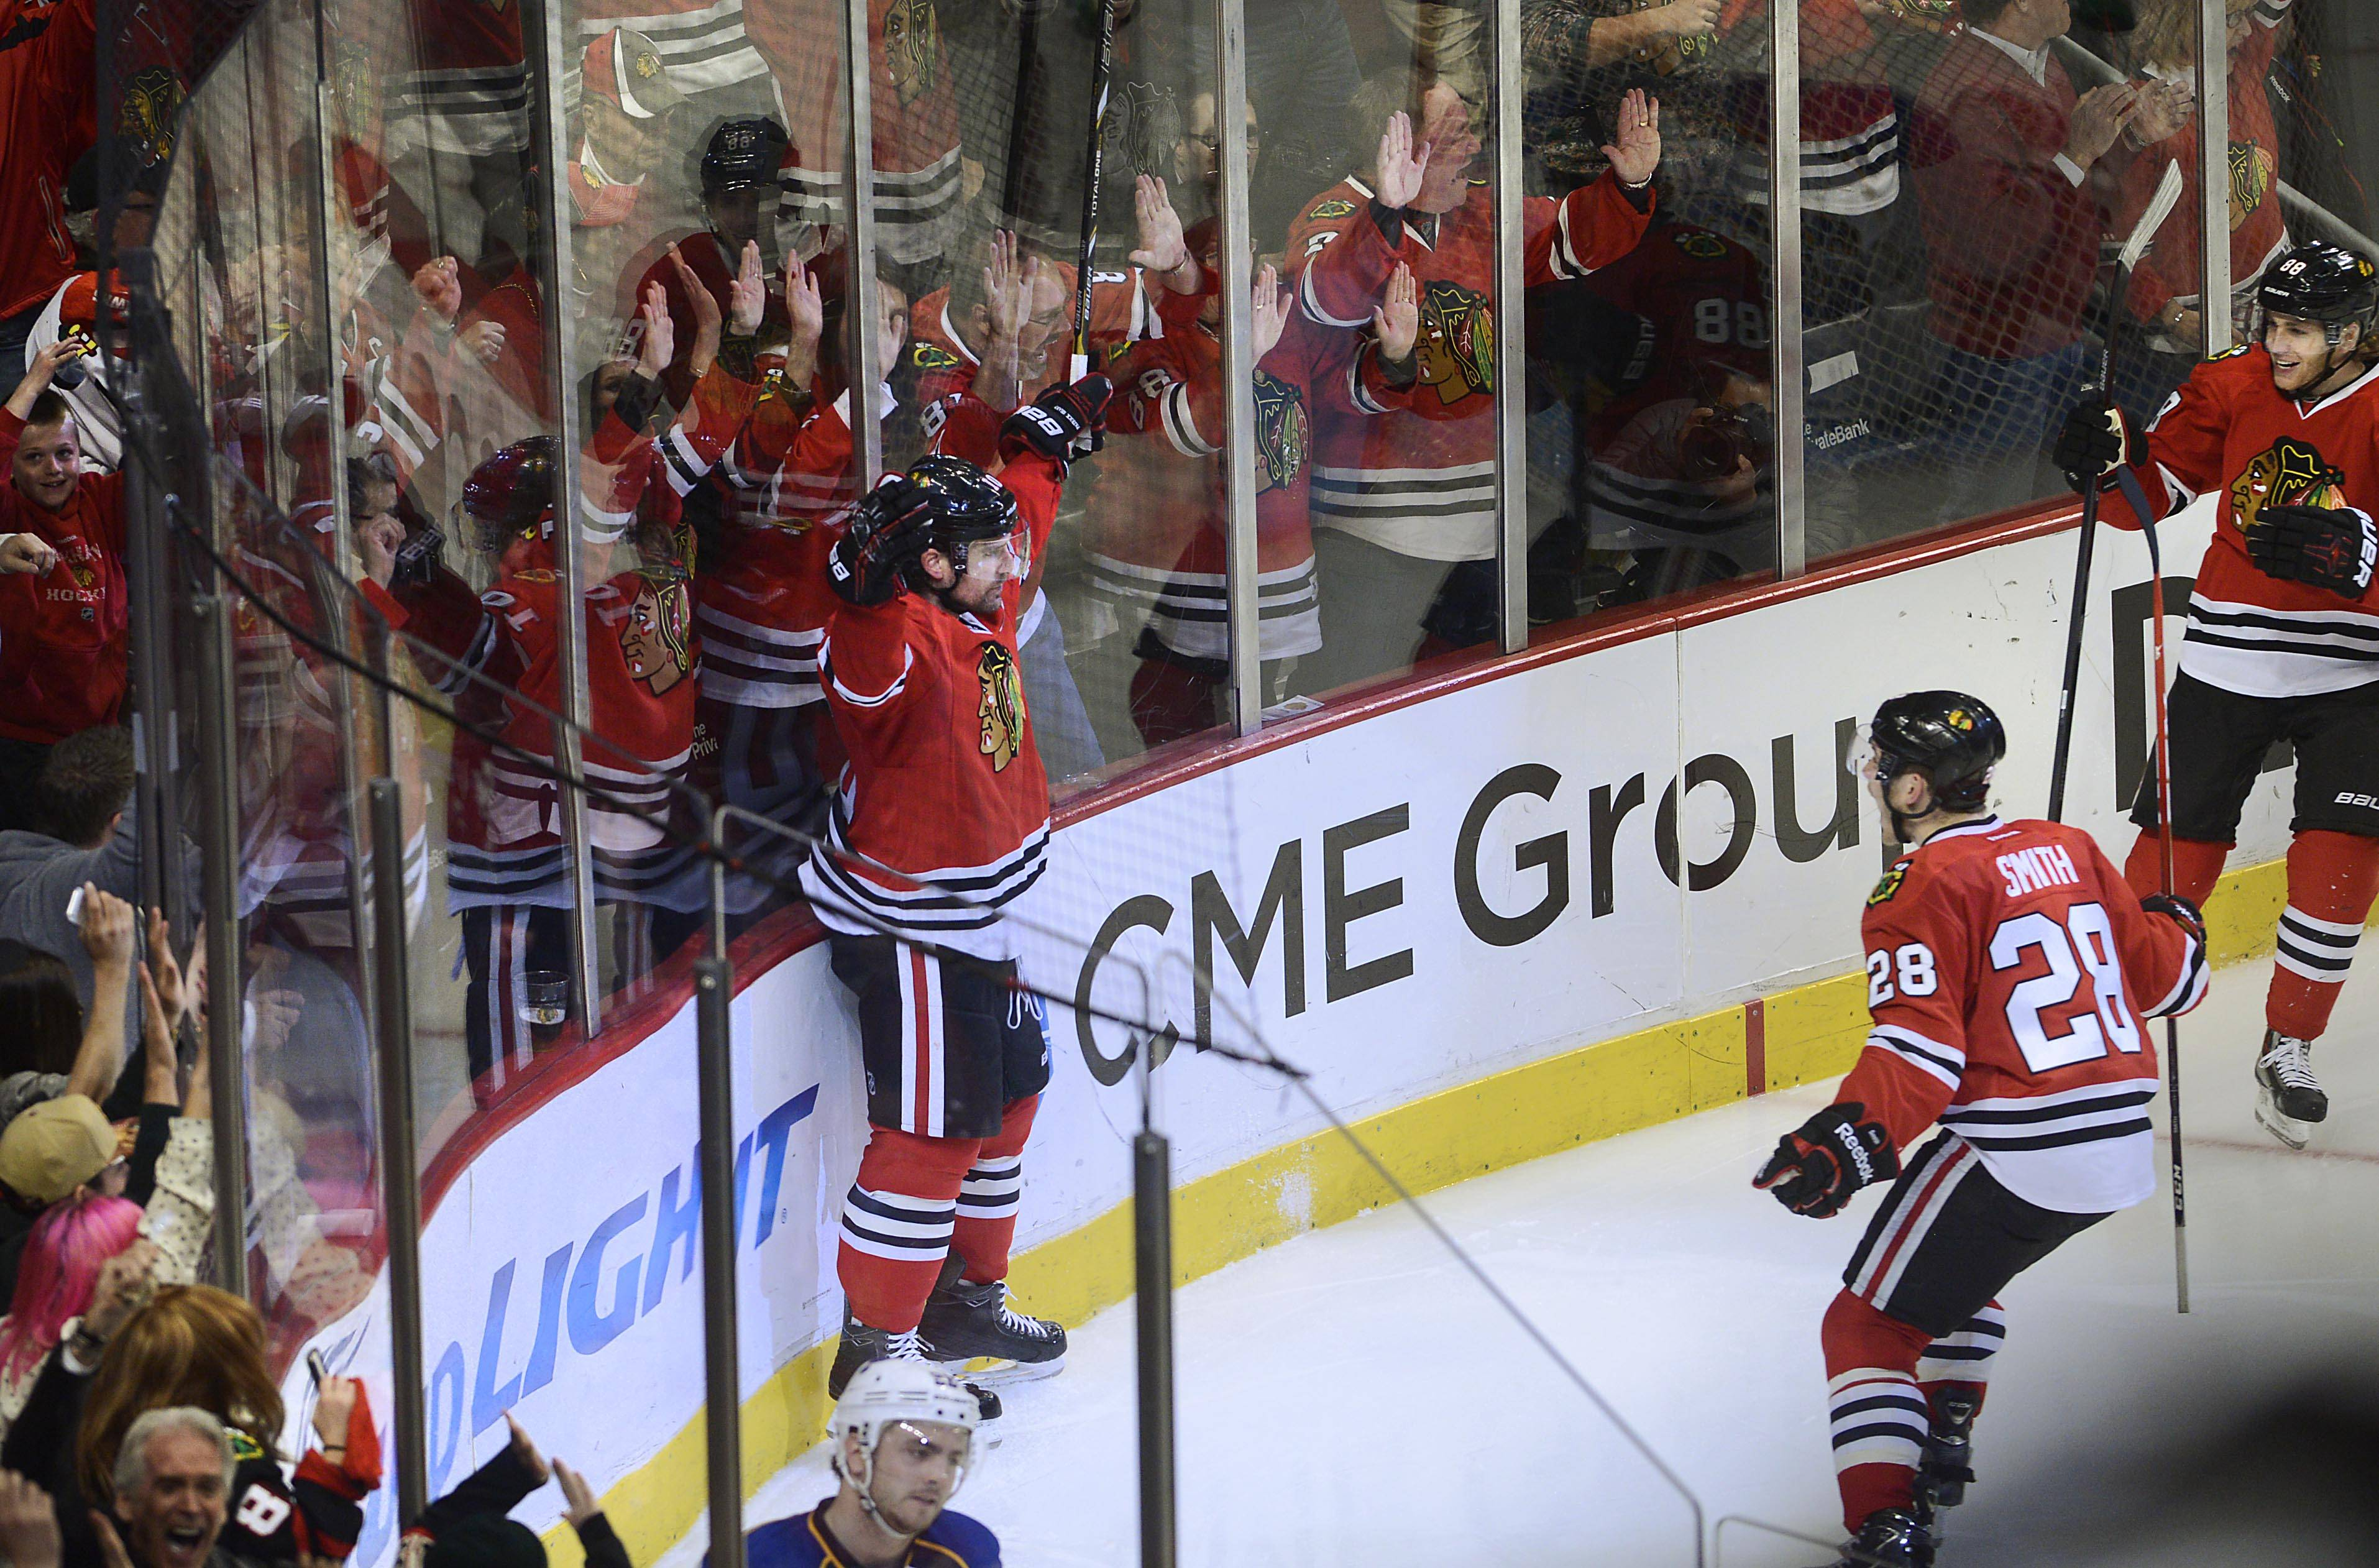 Chicago Blackhawks left wing Patrick Sharp celebrates his third-period goal with fans Sunday in Game 6 of the NHL first round playoffs at the United Center in Chicago. Chicago beat the St. Louis Blues to advance to the second round of the playoffs.